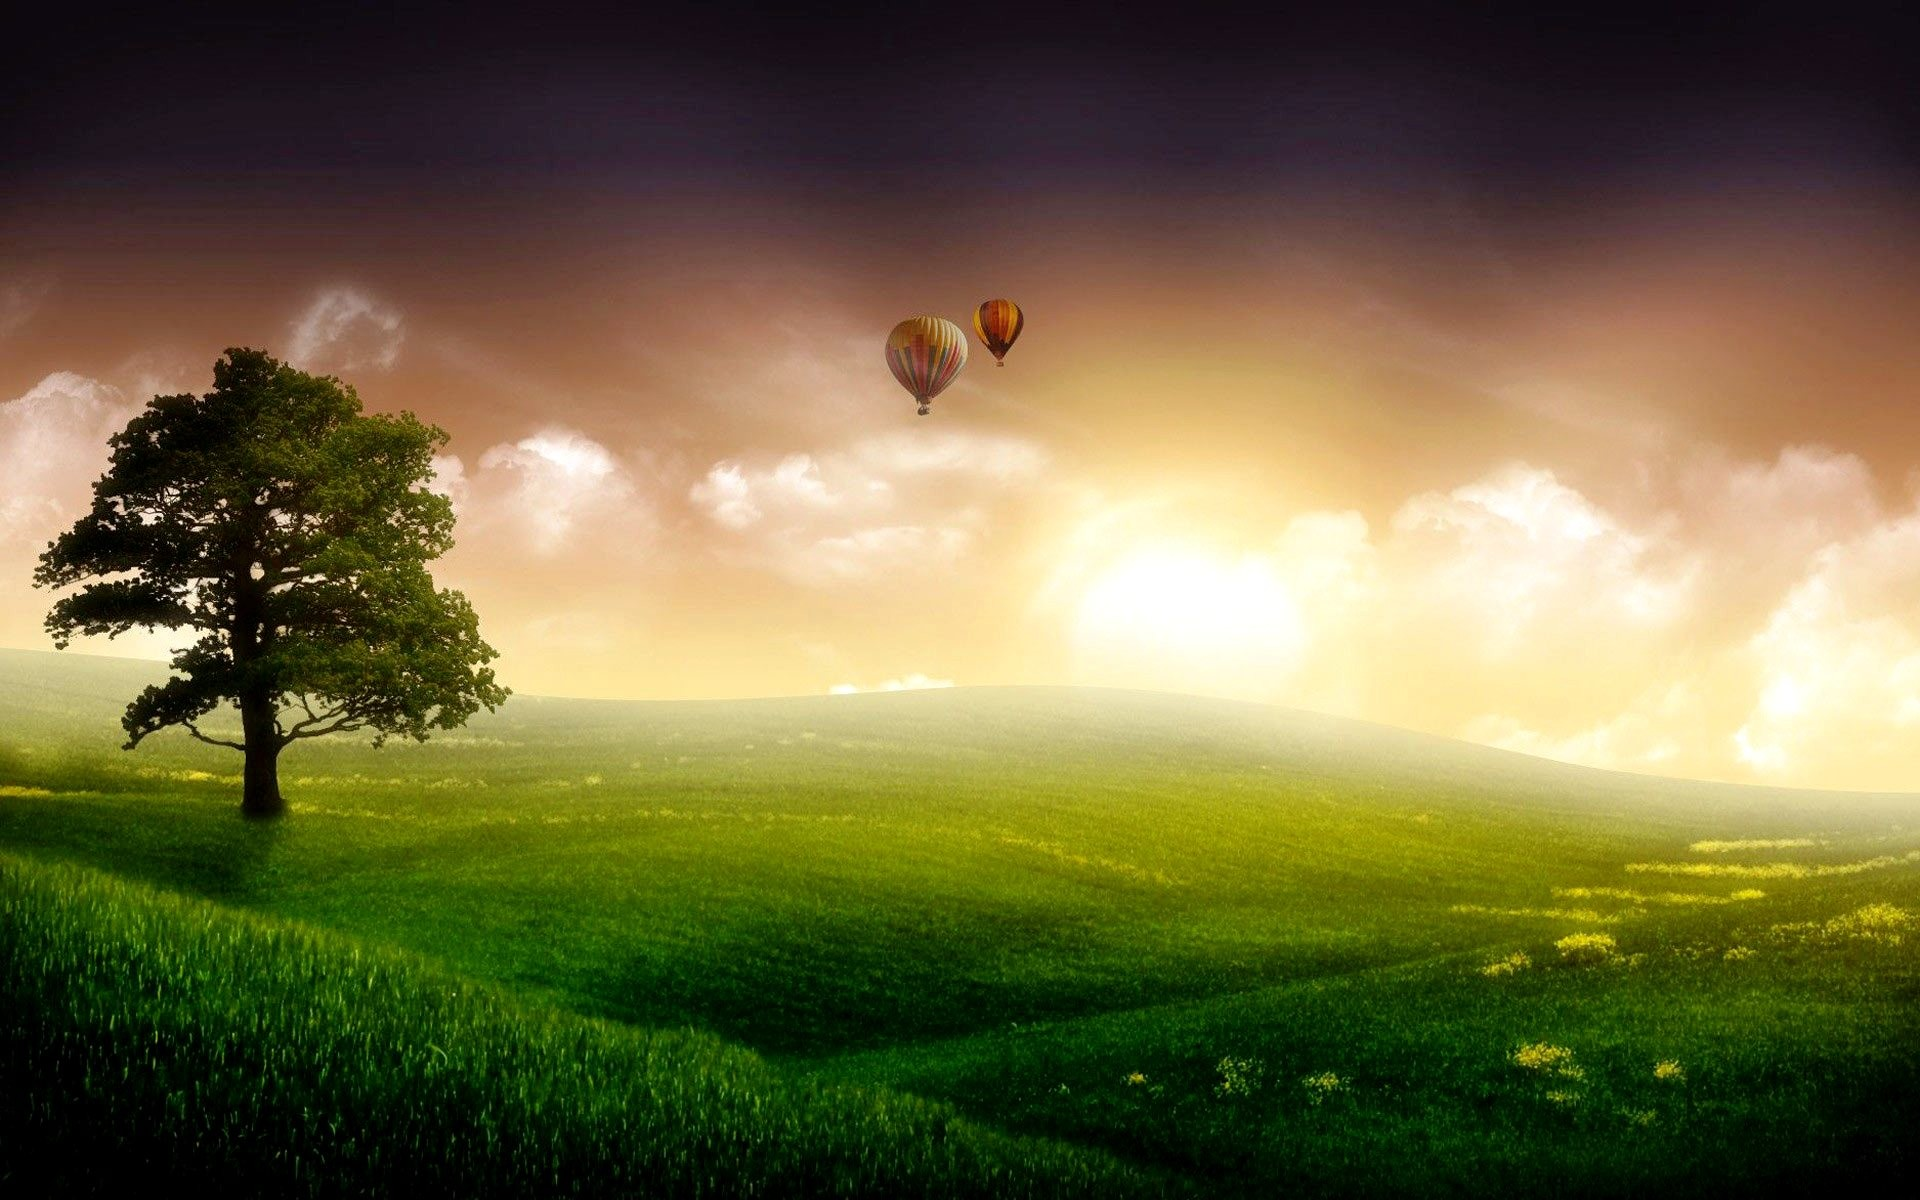 1920x1200 Animated Desktop Wallpaper For Windows 7 Wallpapers Free .